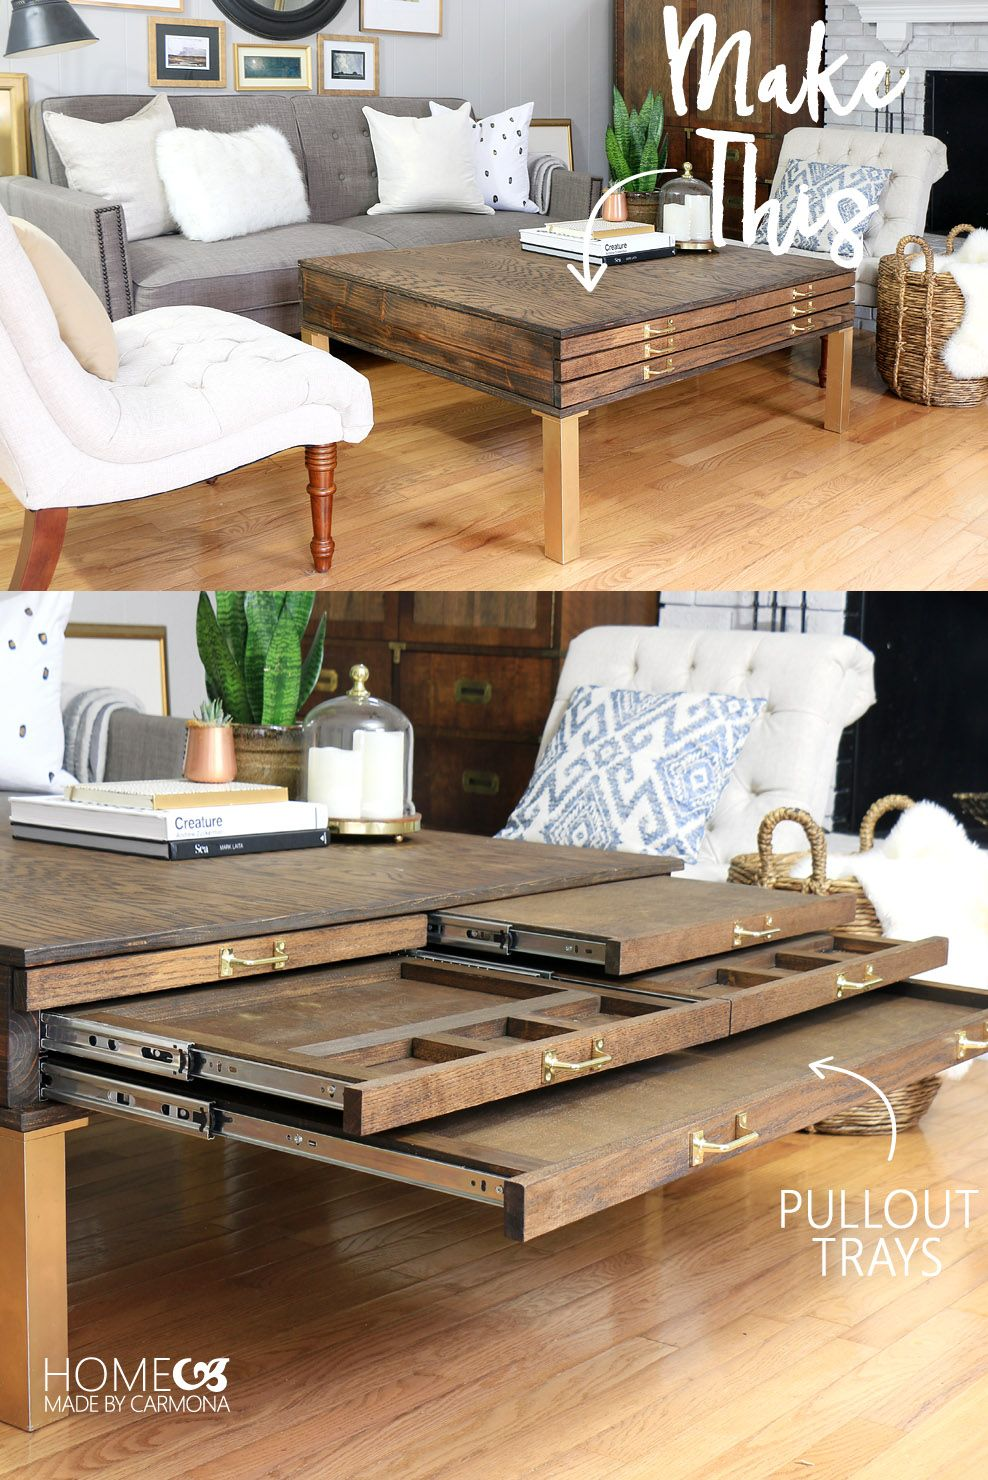 Diy Coffee Table With Pullouts Make A Perfect For Storage As Gaming Tabletop Tv Trays Serving Puzzle Etc